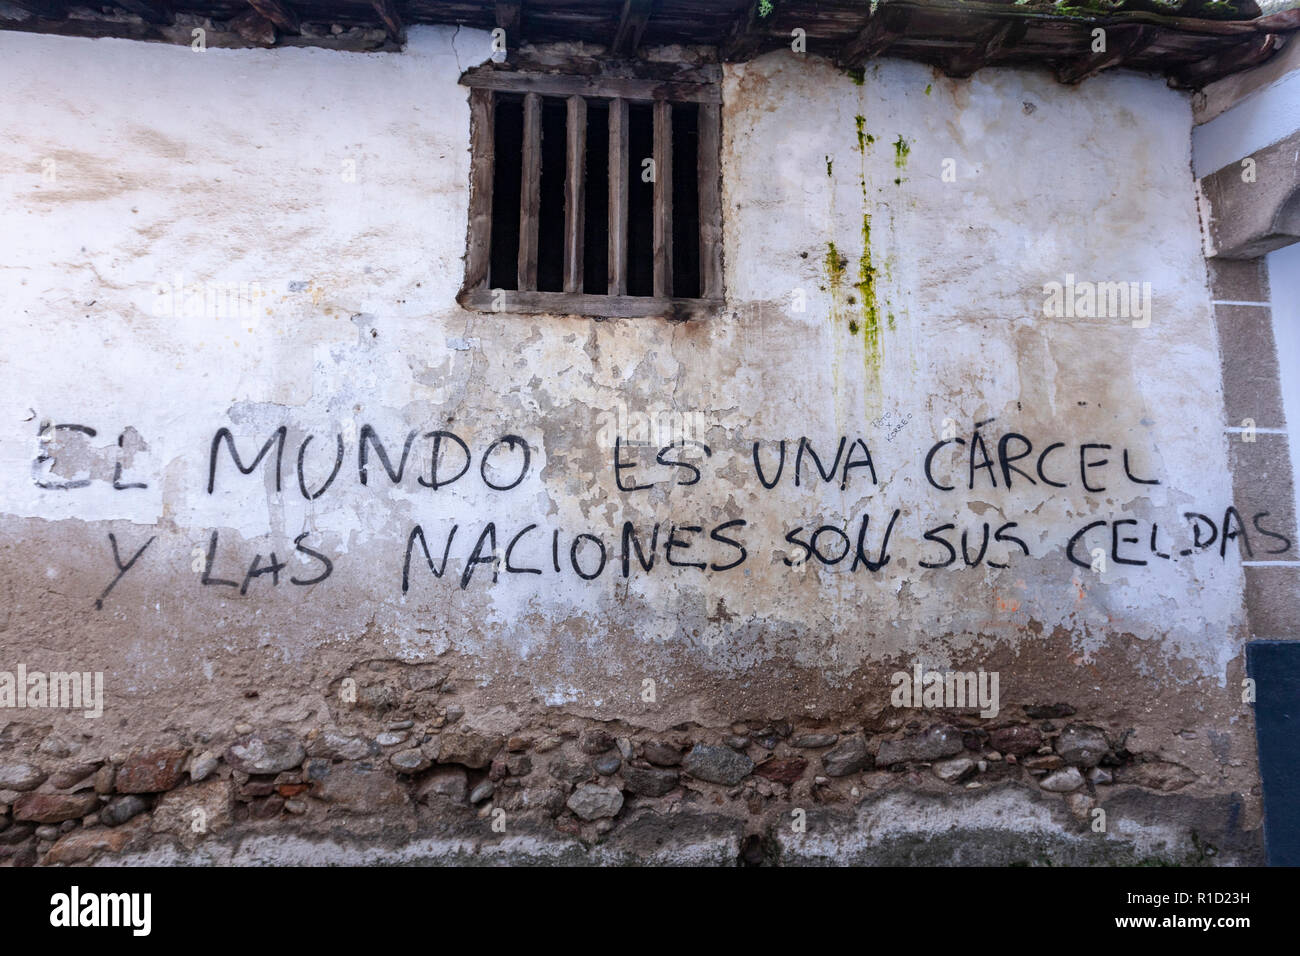 Revolutionary slogan, El mundo es una carcel y las naciones son sus celdas, painted in a wall in Hervas, Extremadura, Spain Stock Photo